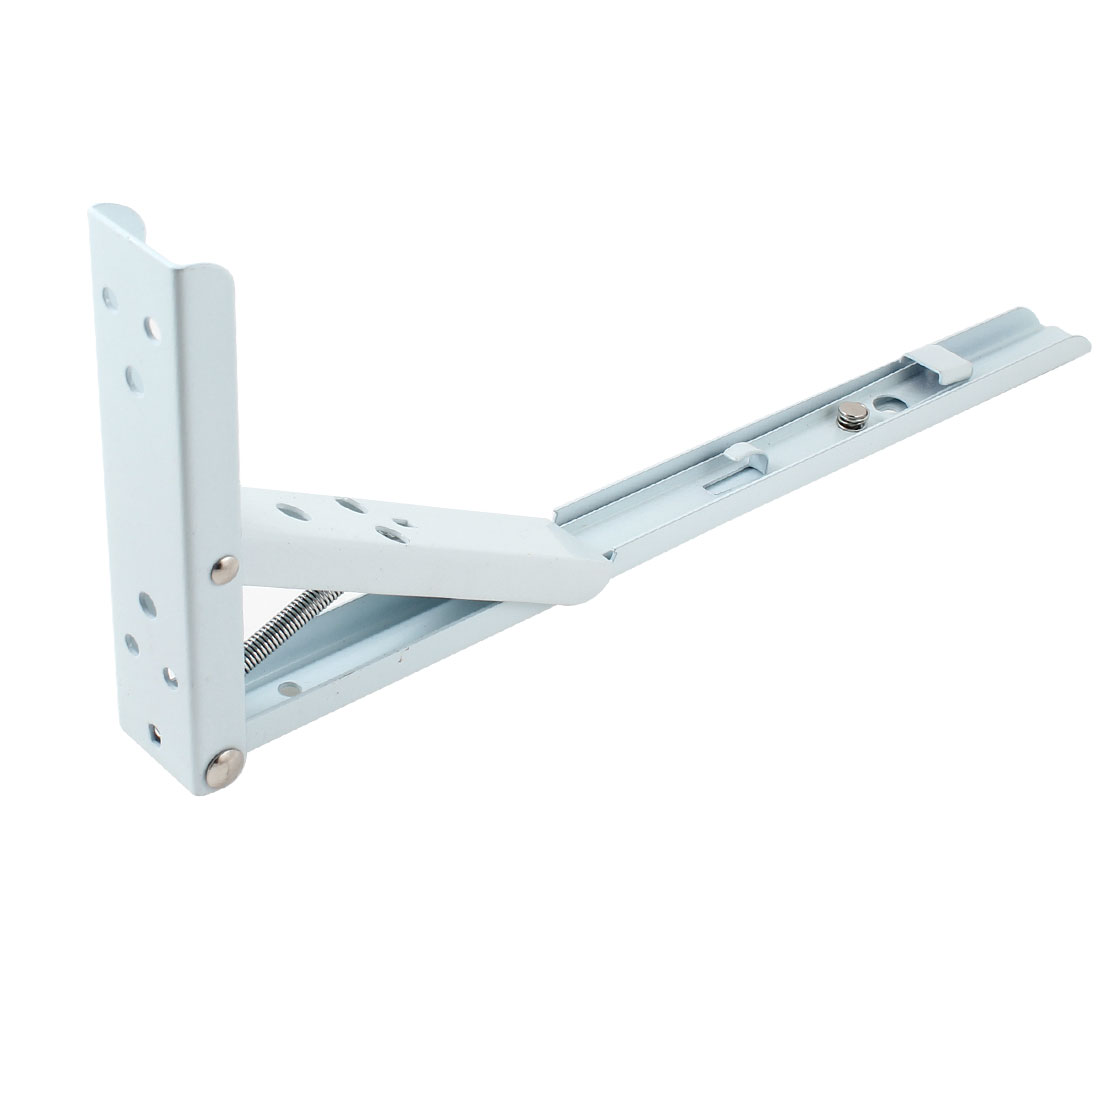 "14"" White Stainless Steel 90 Degree Right Angle Spring Shelf Support Bracket"